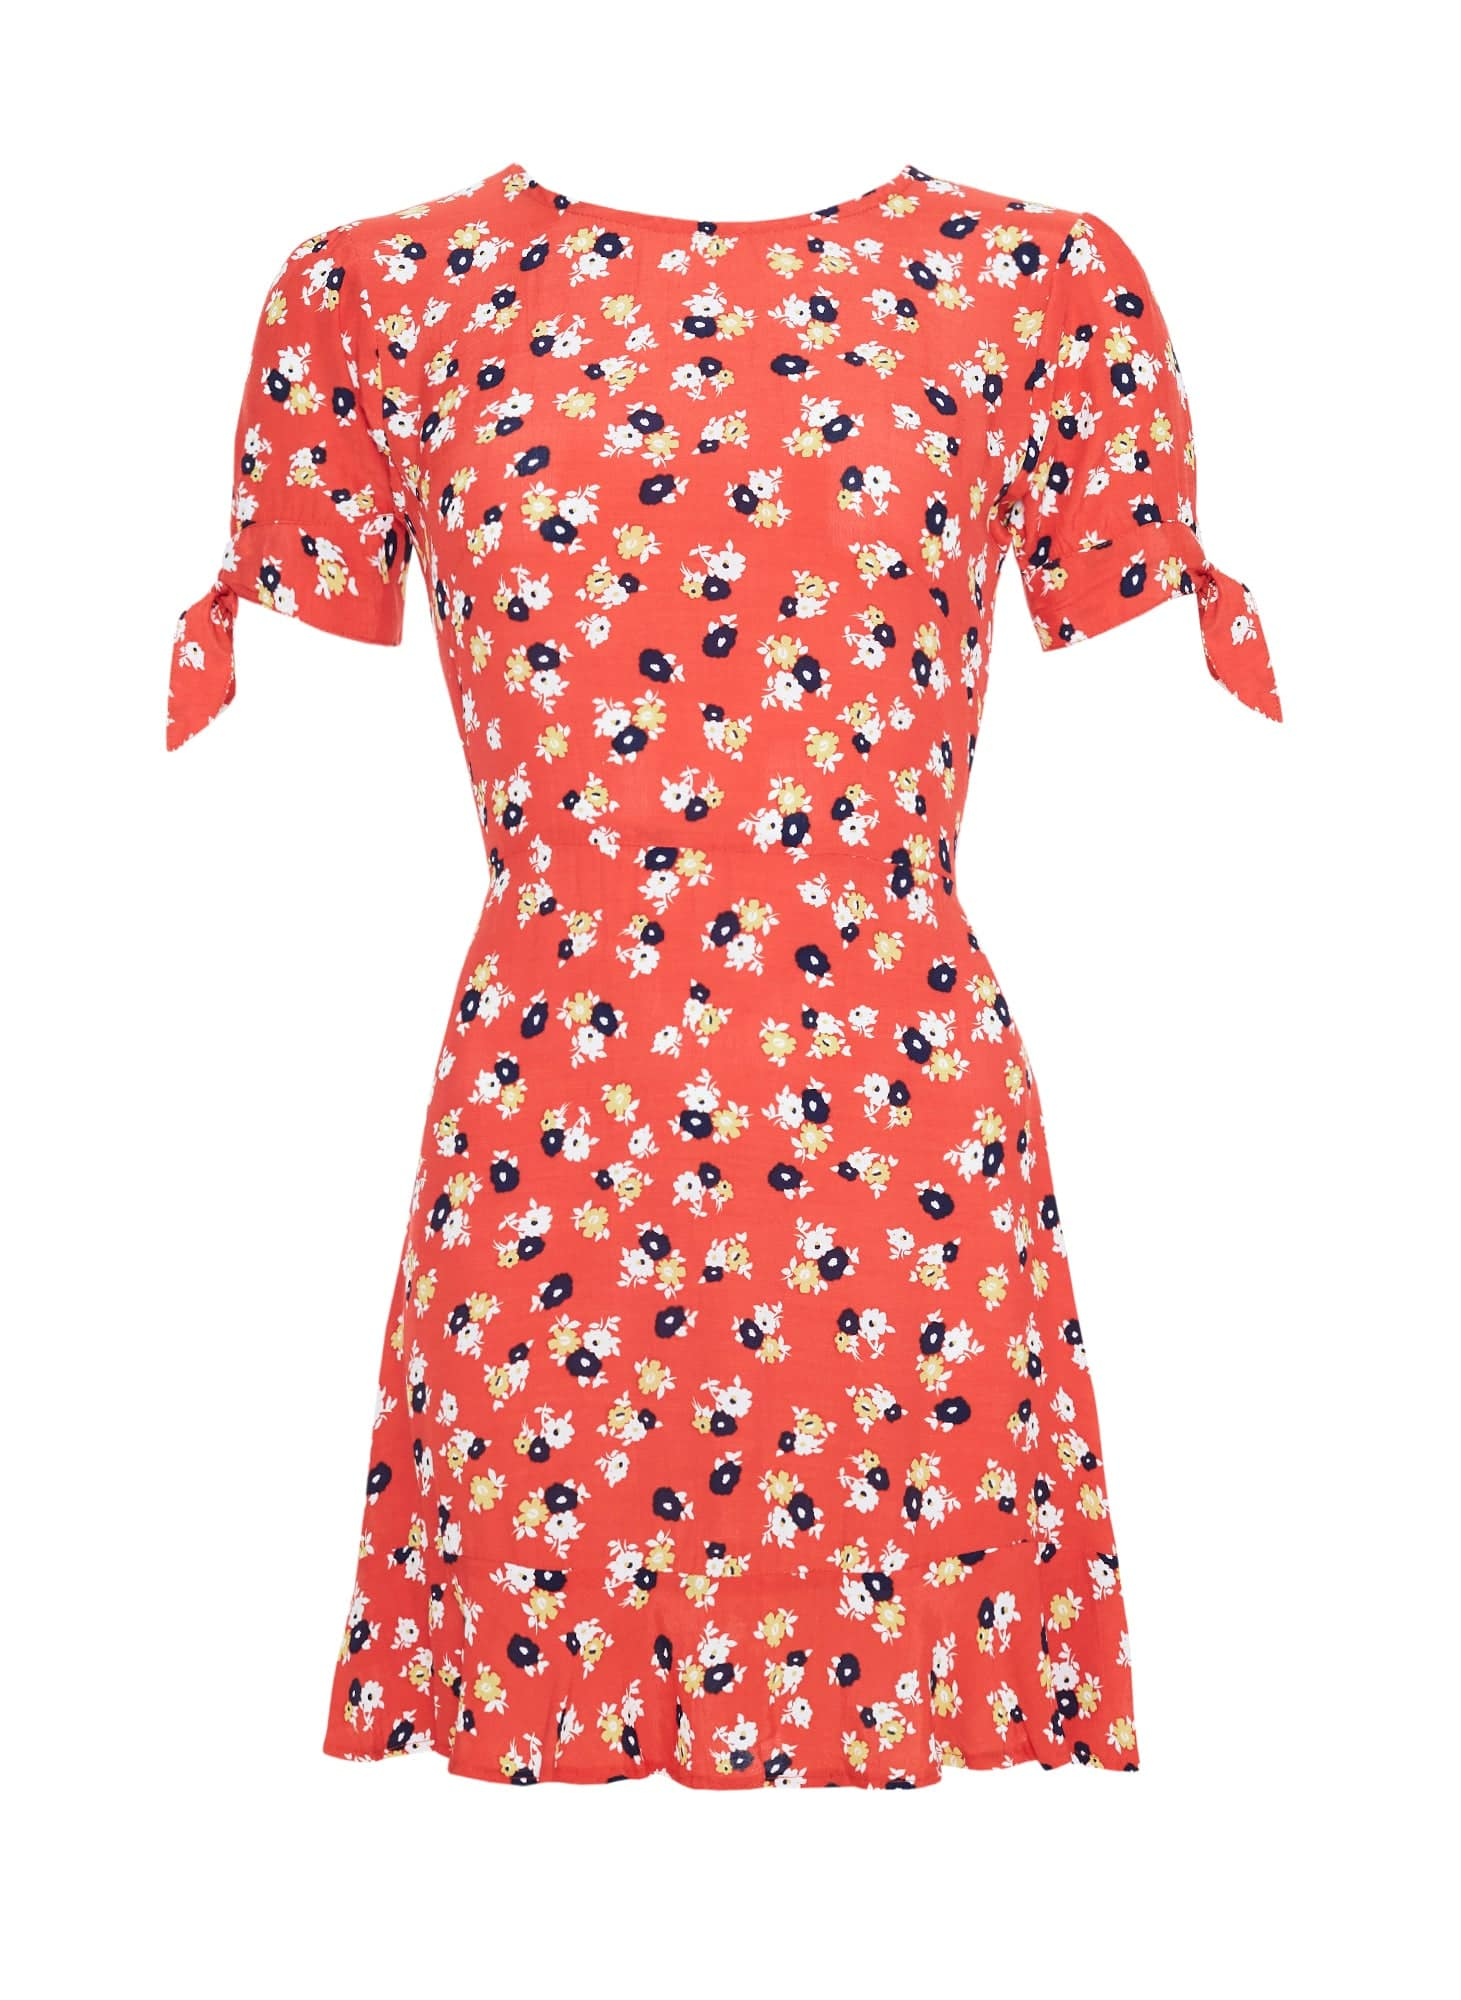 JASMINE FLORAL PRINT - RED - DAPHNE DRESS